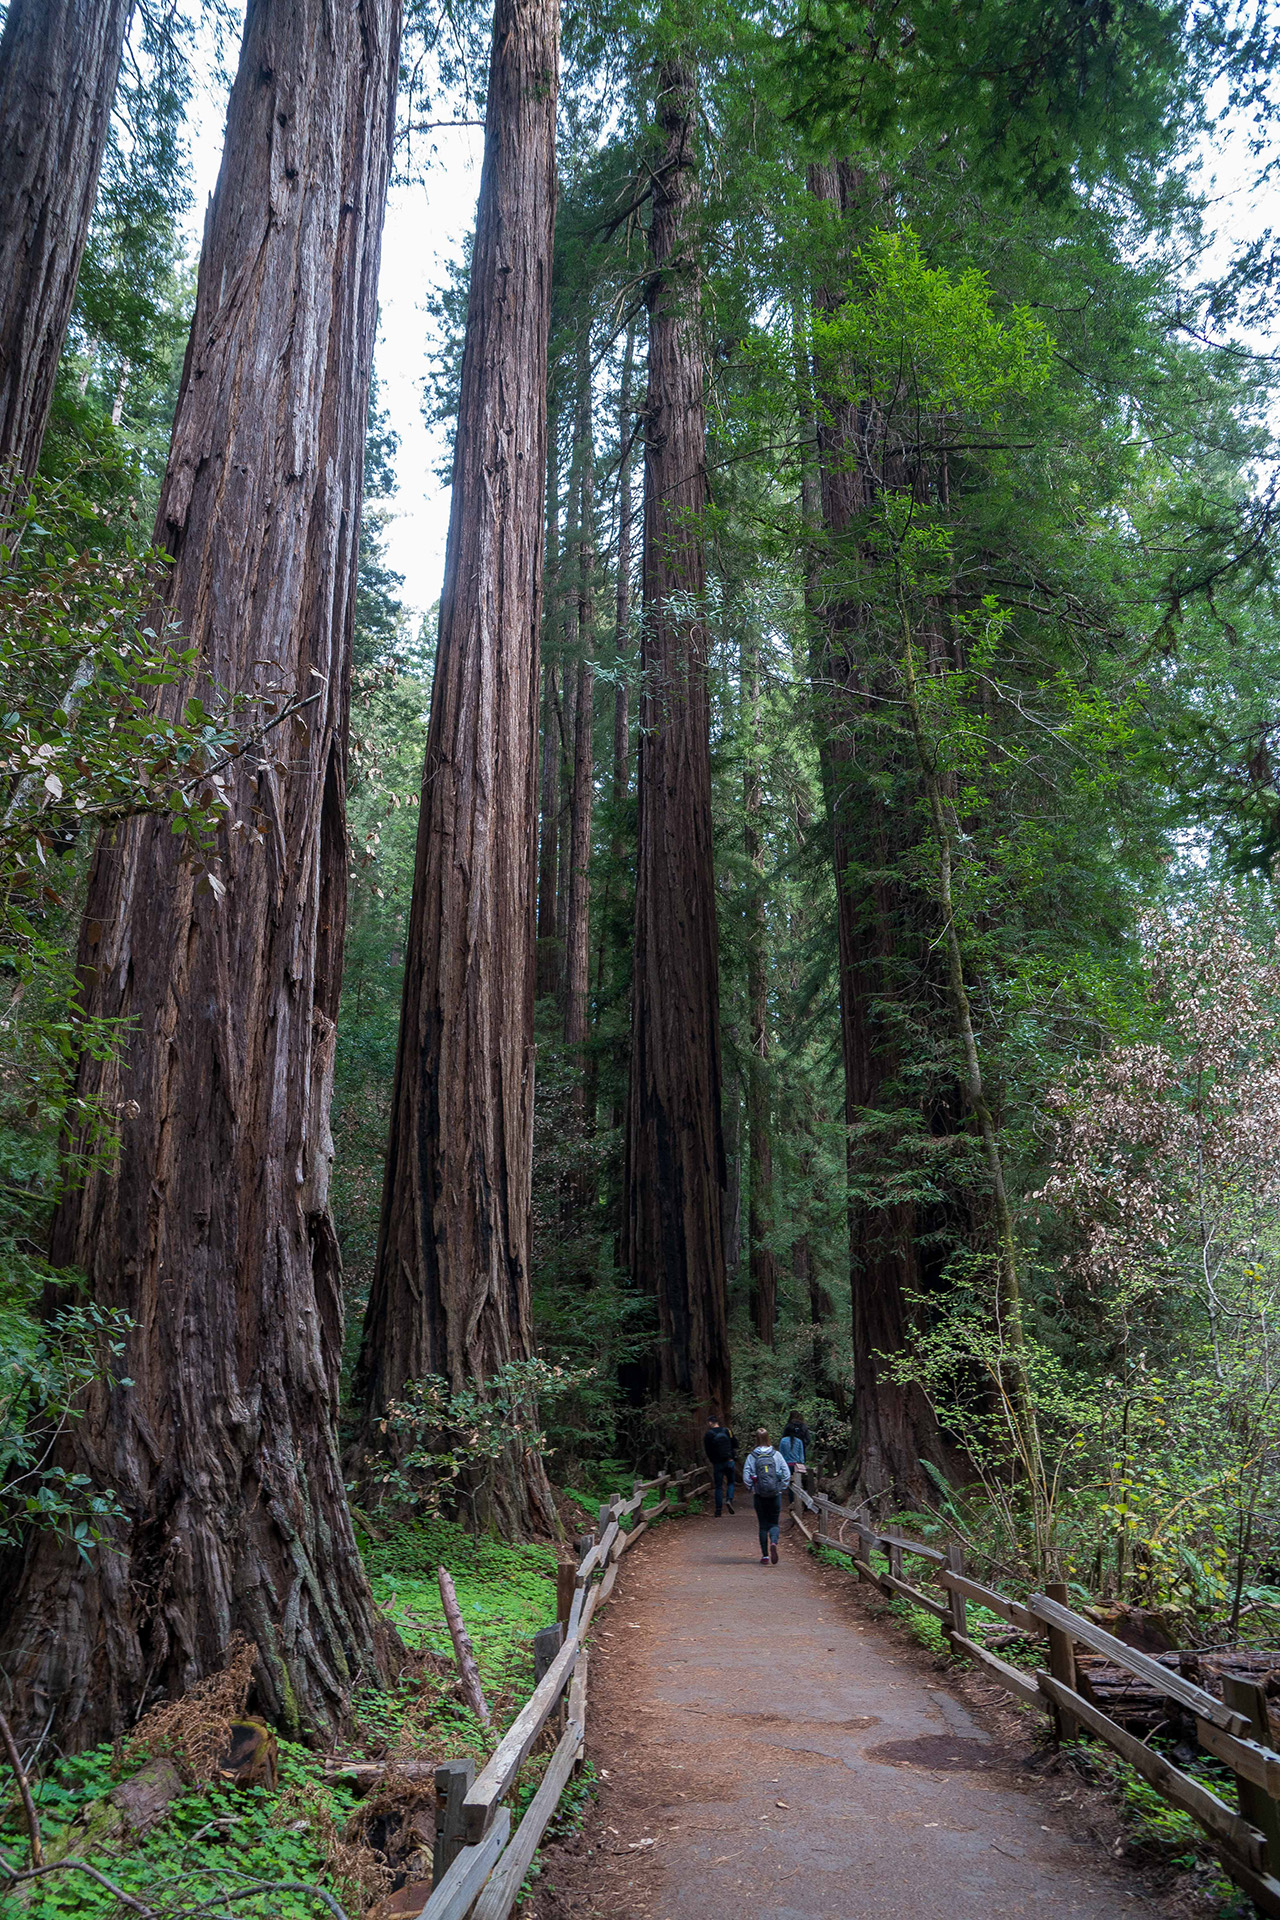 Among giants at Muir Woods National Monument.